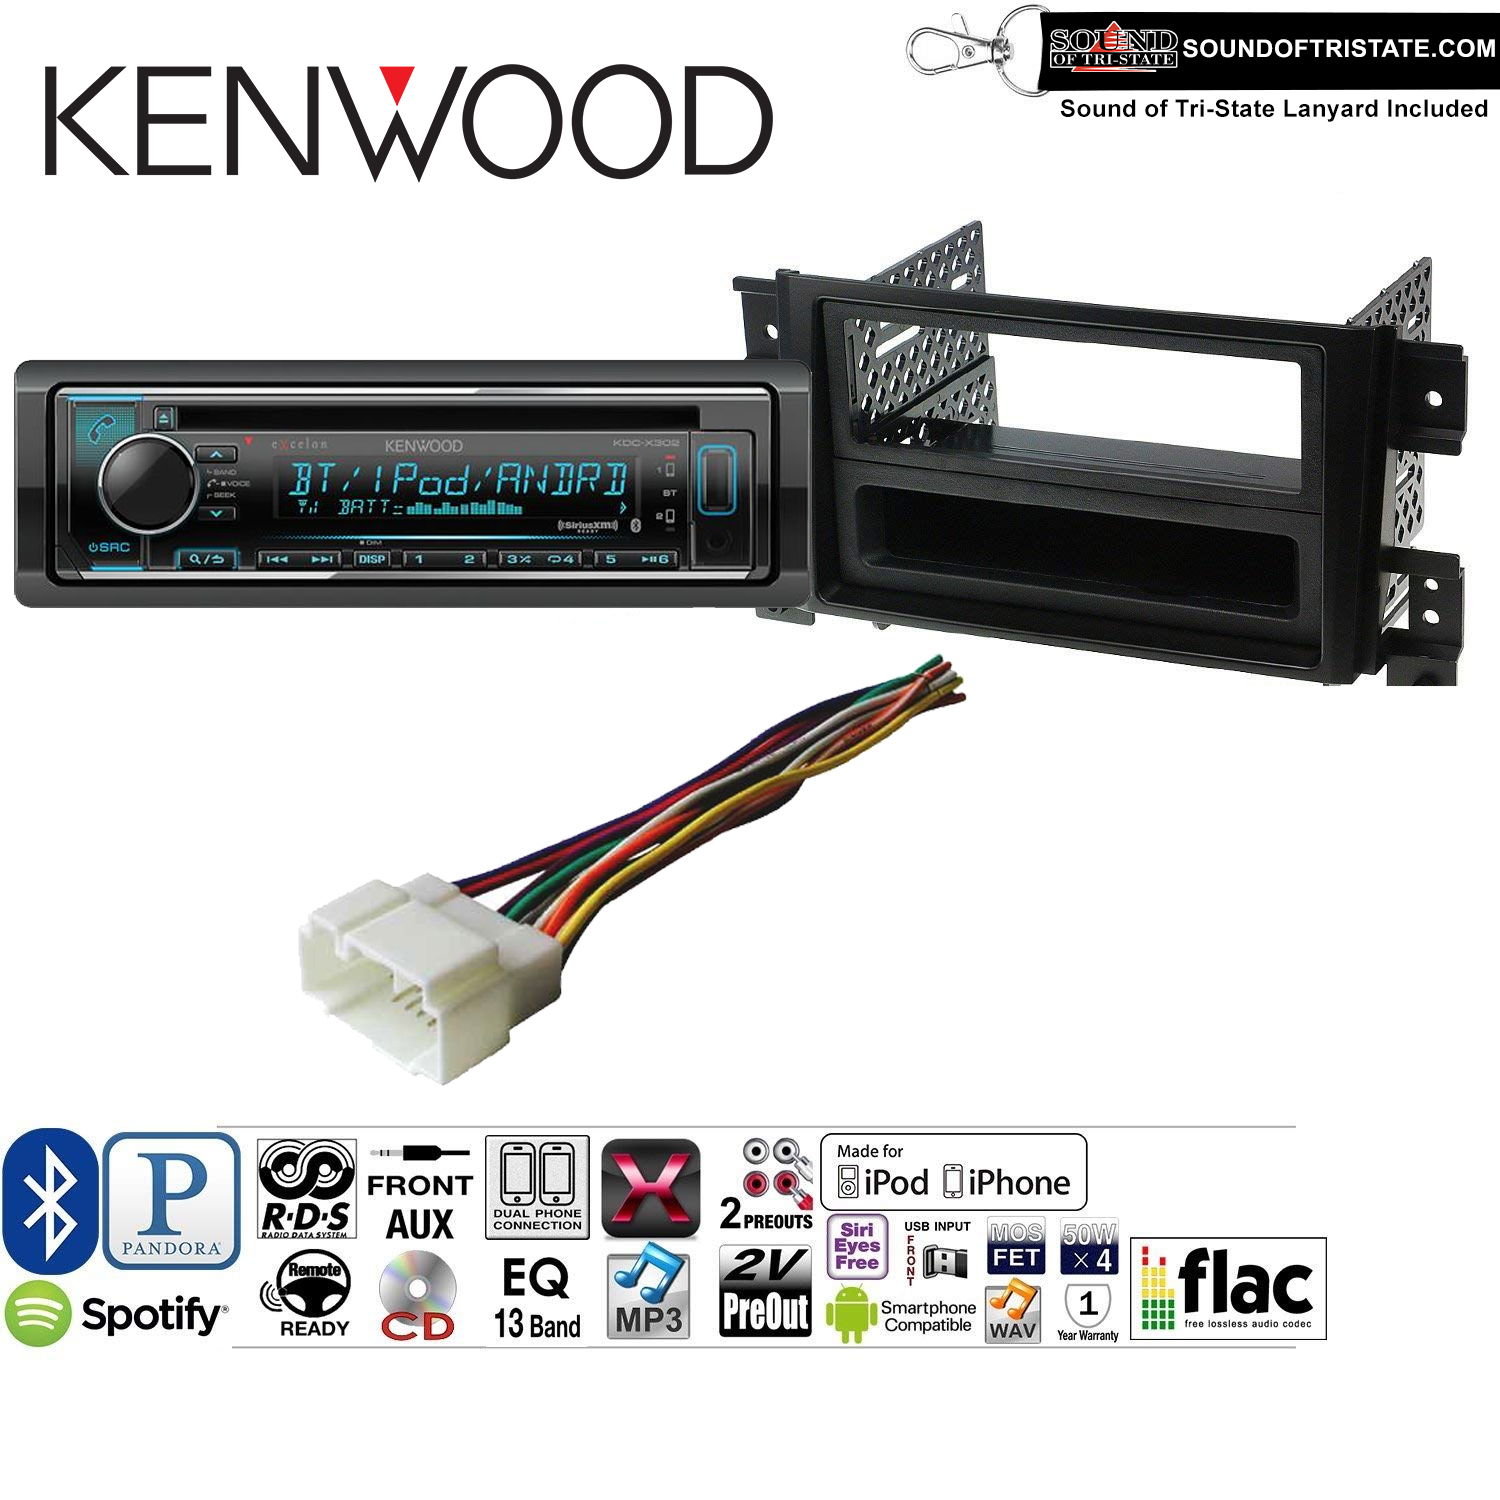 Kenwood KDCX302 Double Din Radio Install Kit with Bluetooth, CD Player, USB/AUX Fits 2006-2013 Suzuki Grand Vitara and a SOTS lanyard included